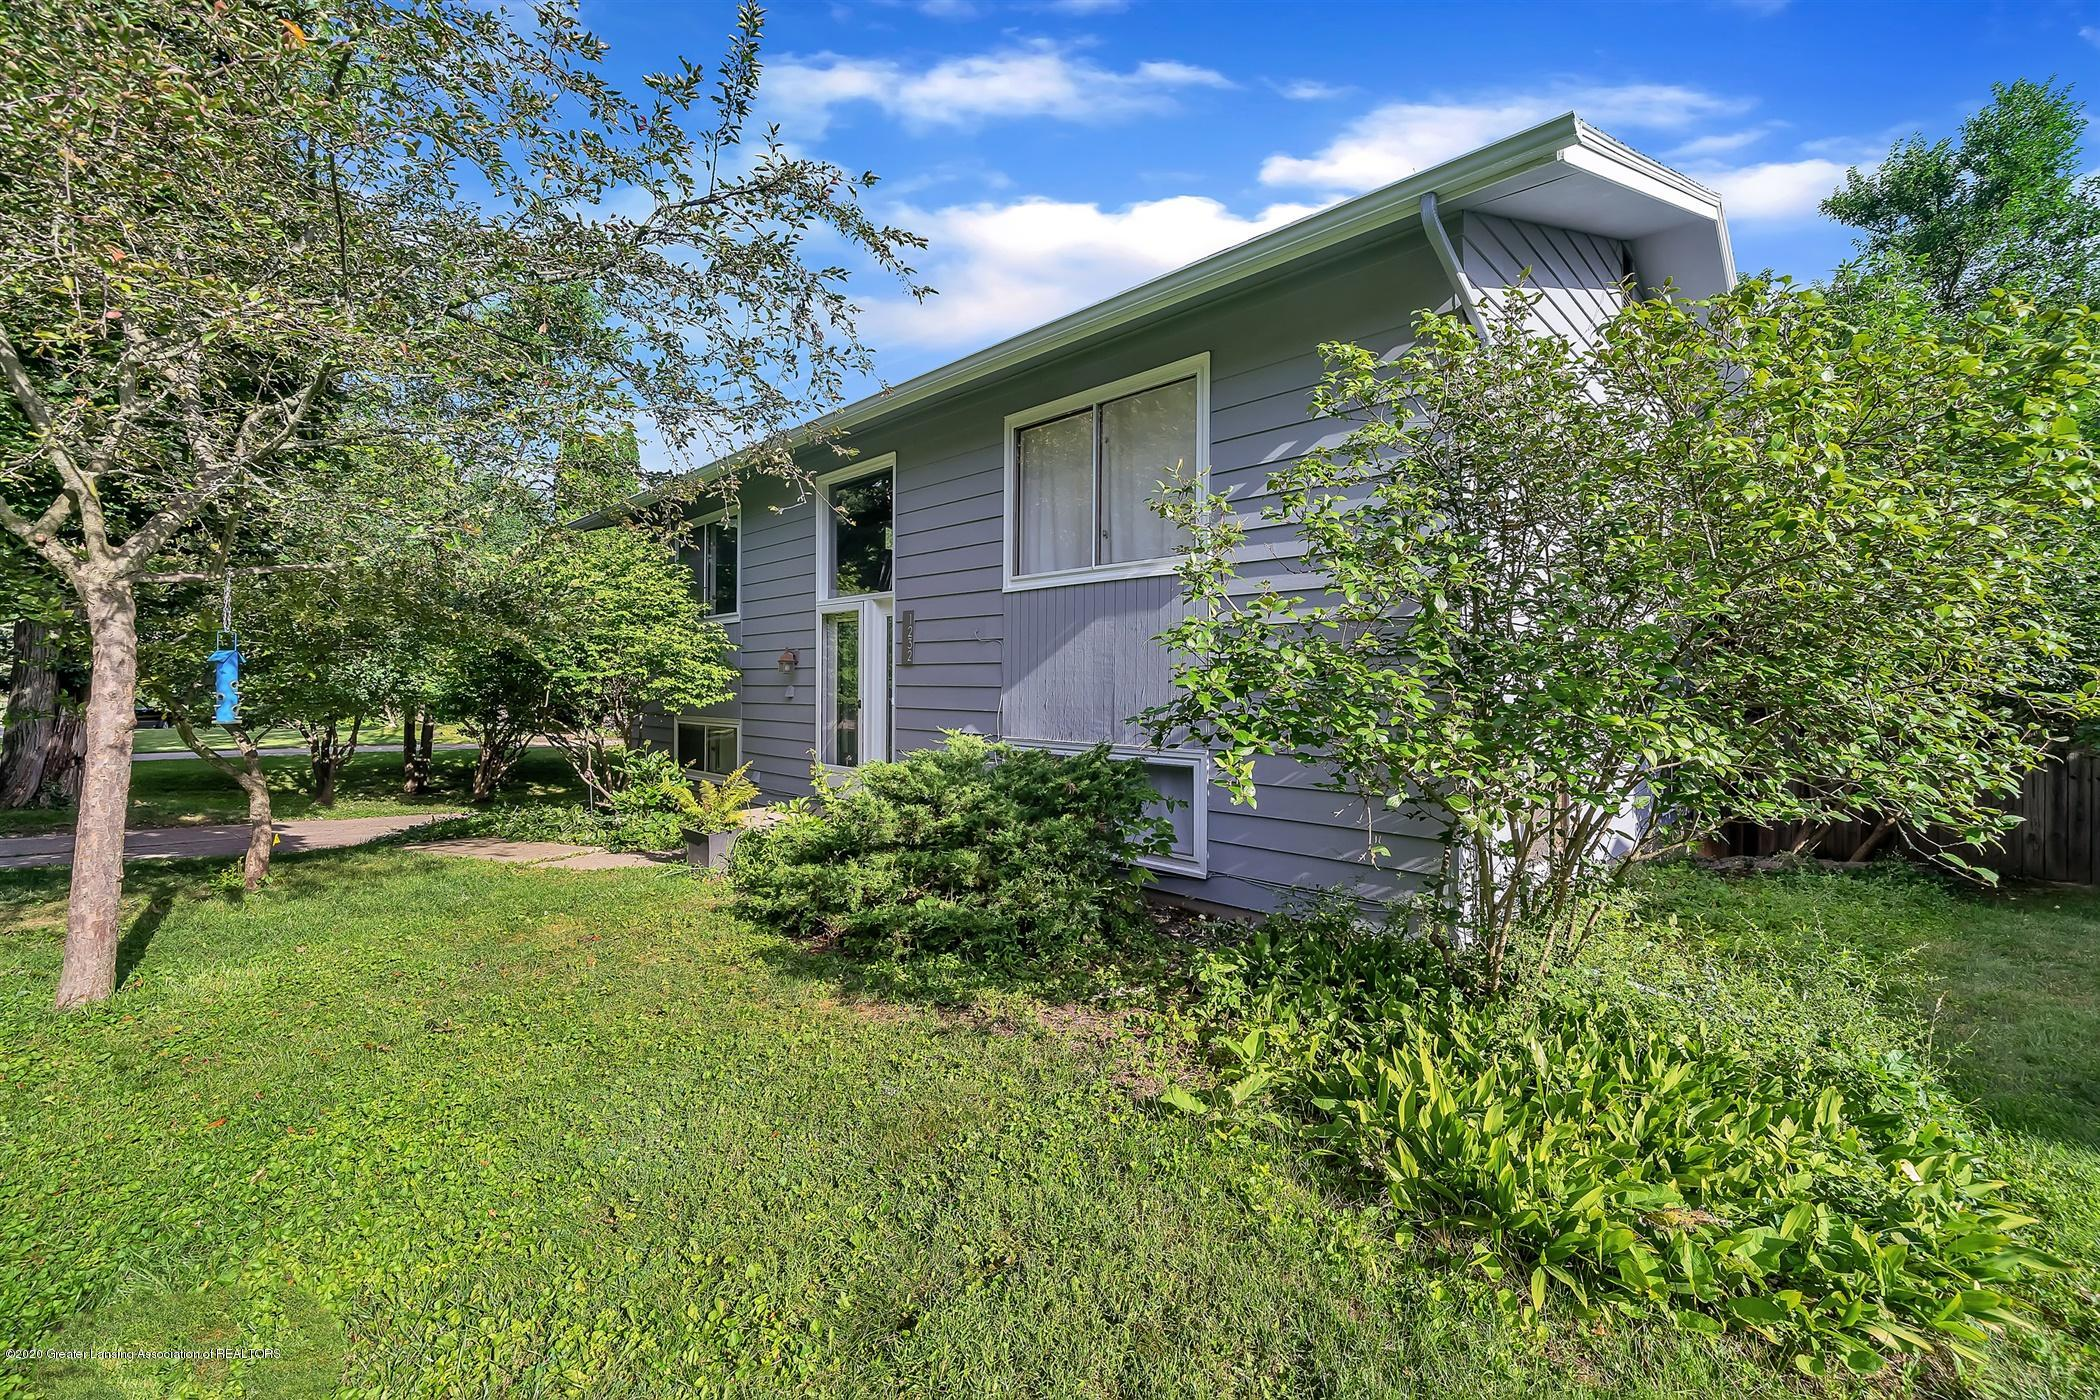 1232 Tanager Ln - 19-1232-Tanager-Ln-WindowStill-Real - 20